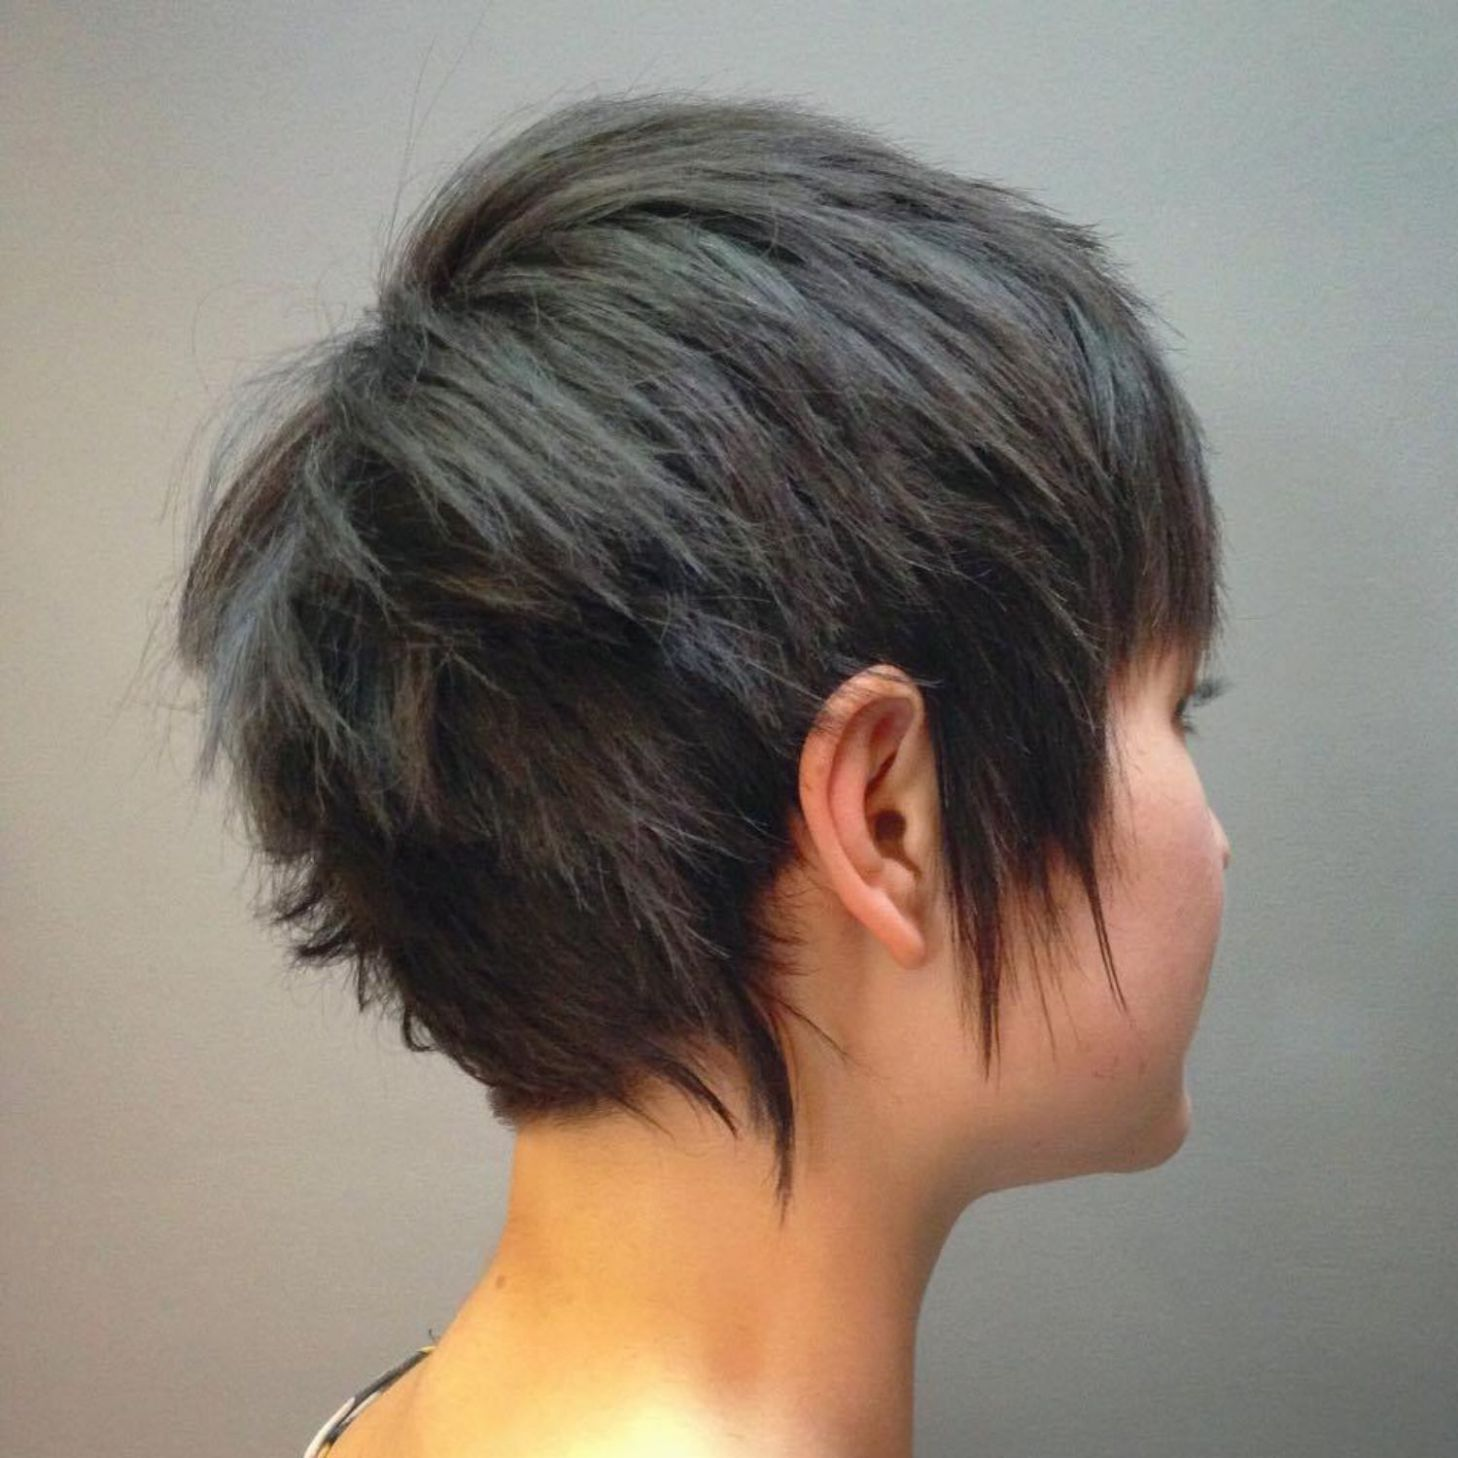 Super Cute Looks with Short Hairstyles for Round Faces  looks